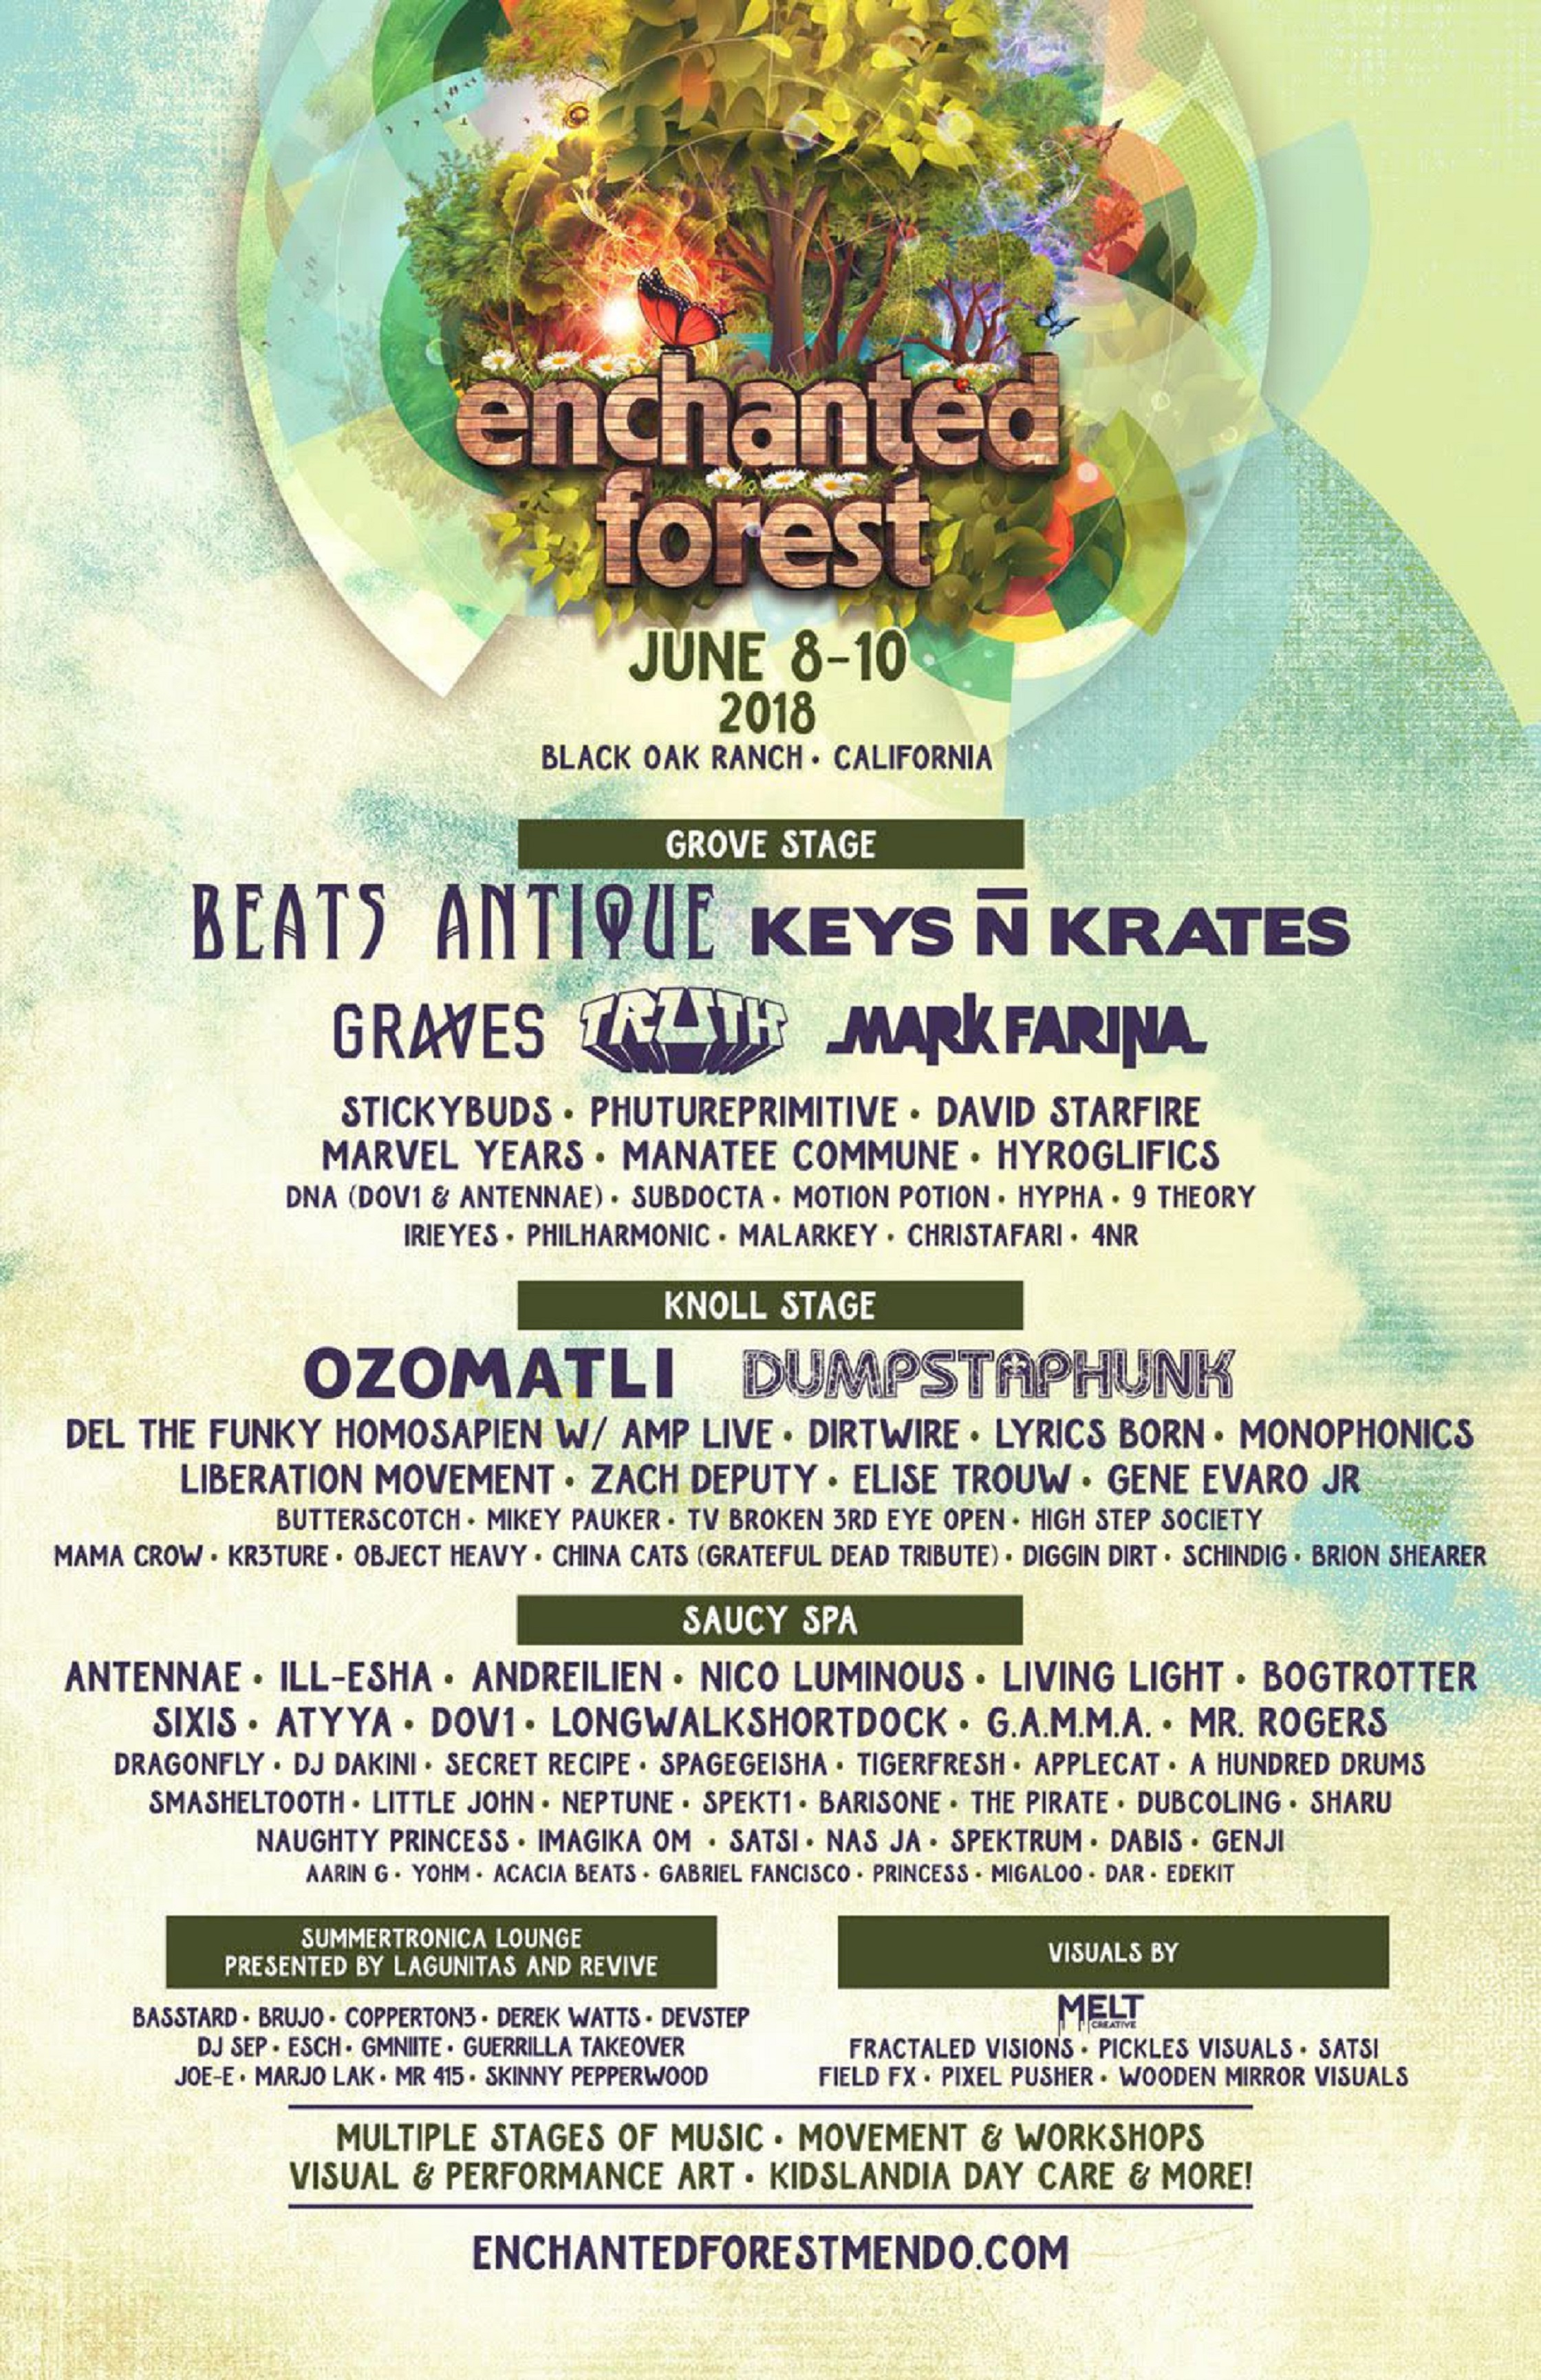 Enchanted Forest Gathering Drops Full Lineup